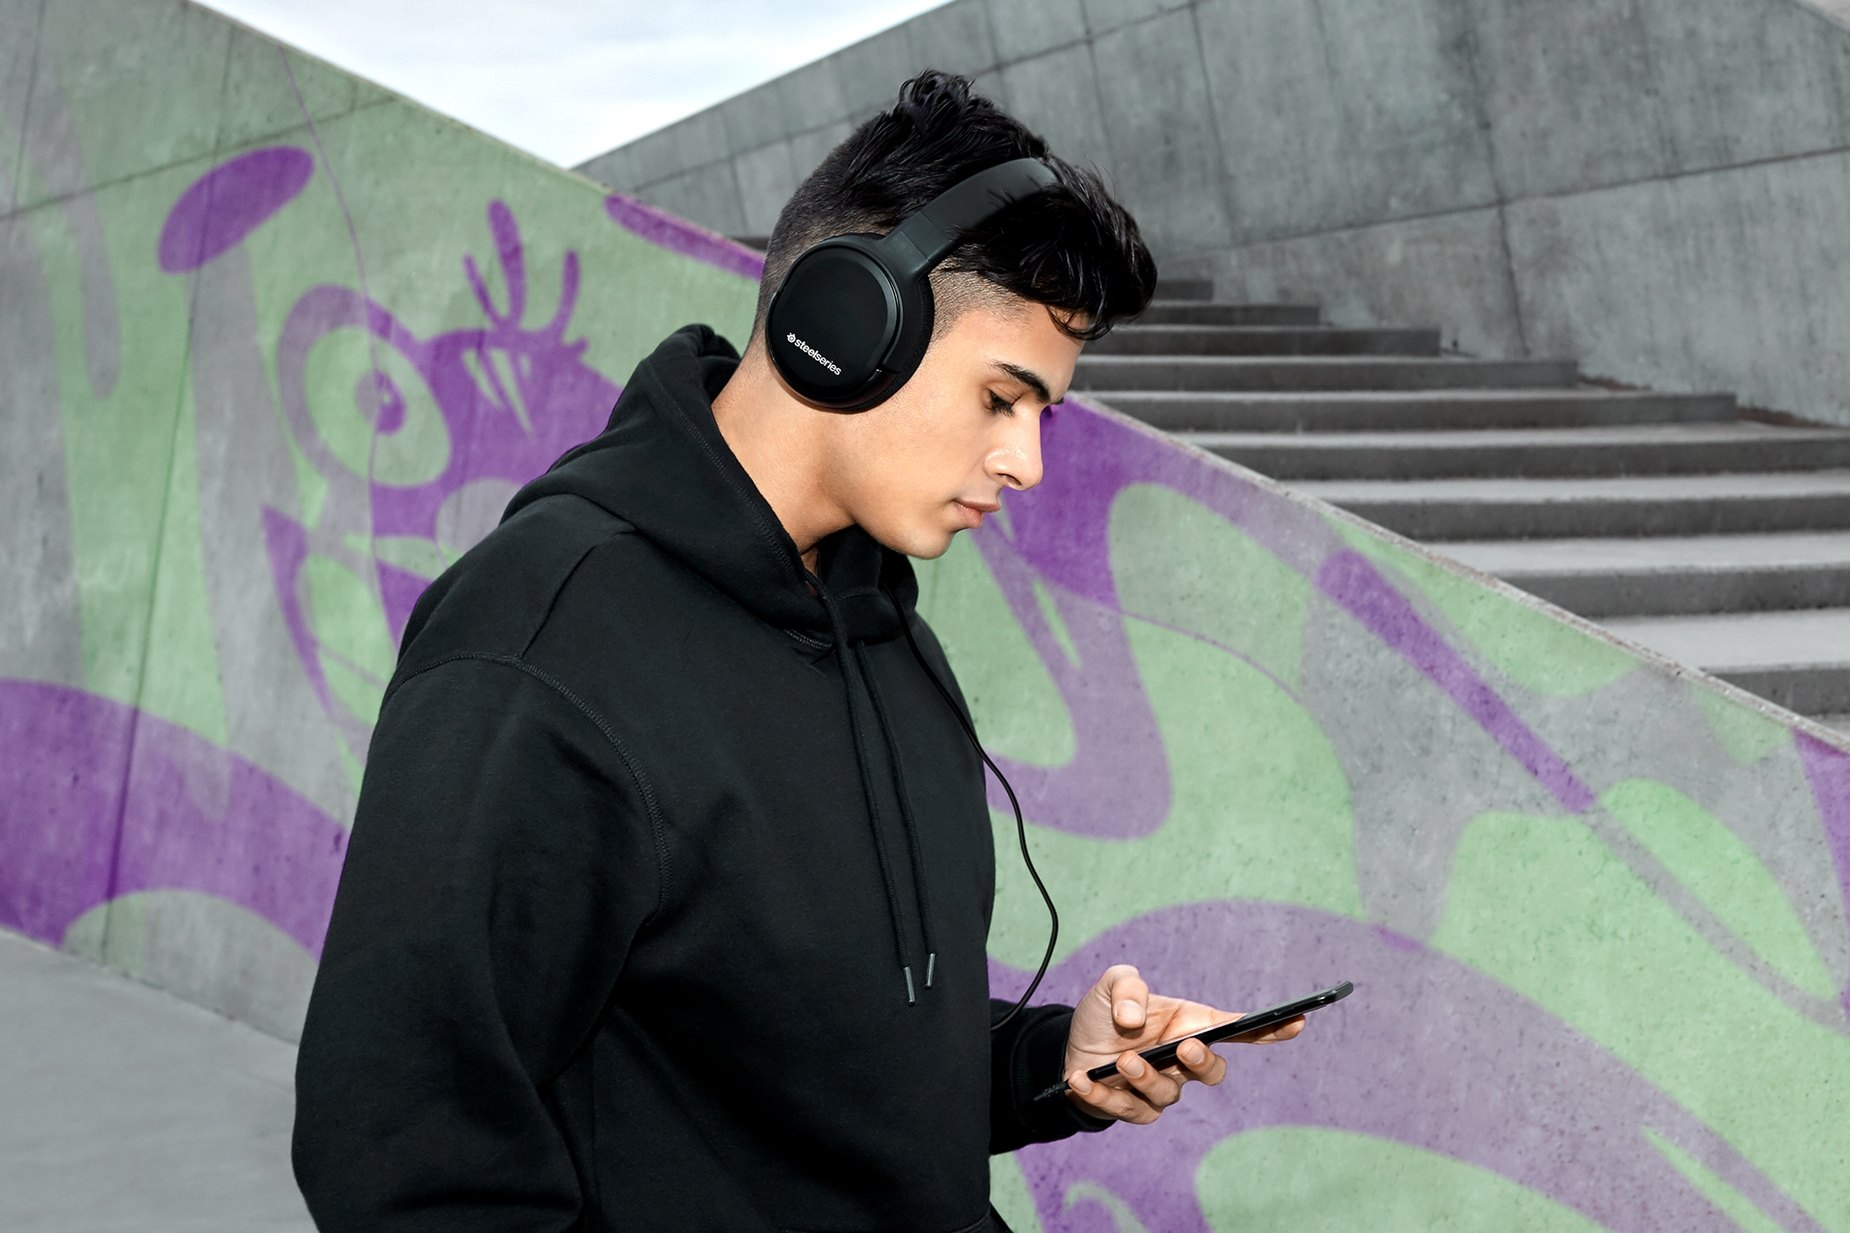 A SteelSeries fan using their Arctis 1 on the go with their phone.